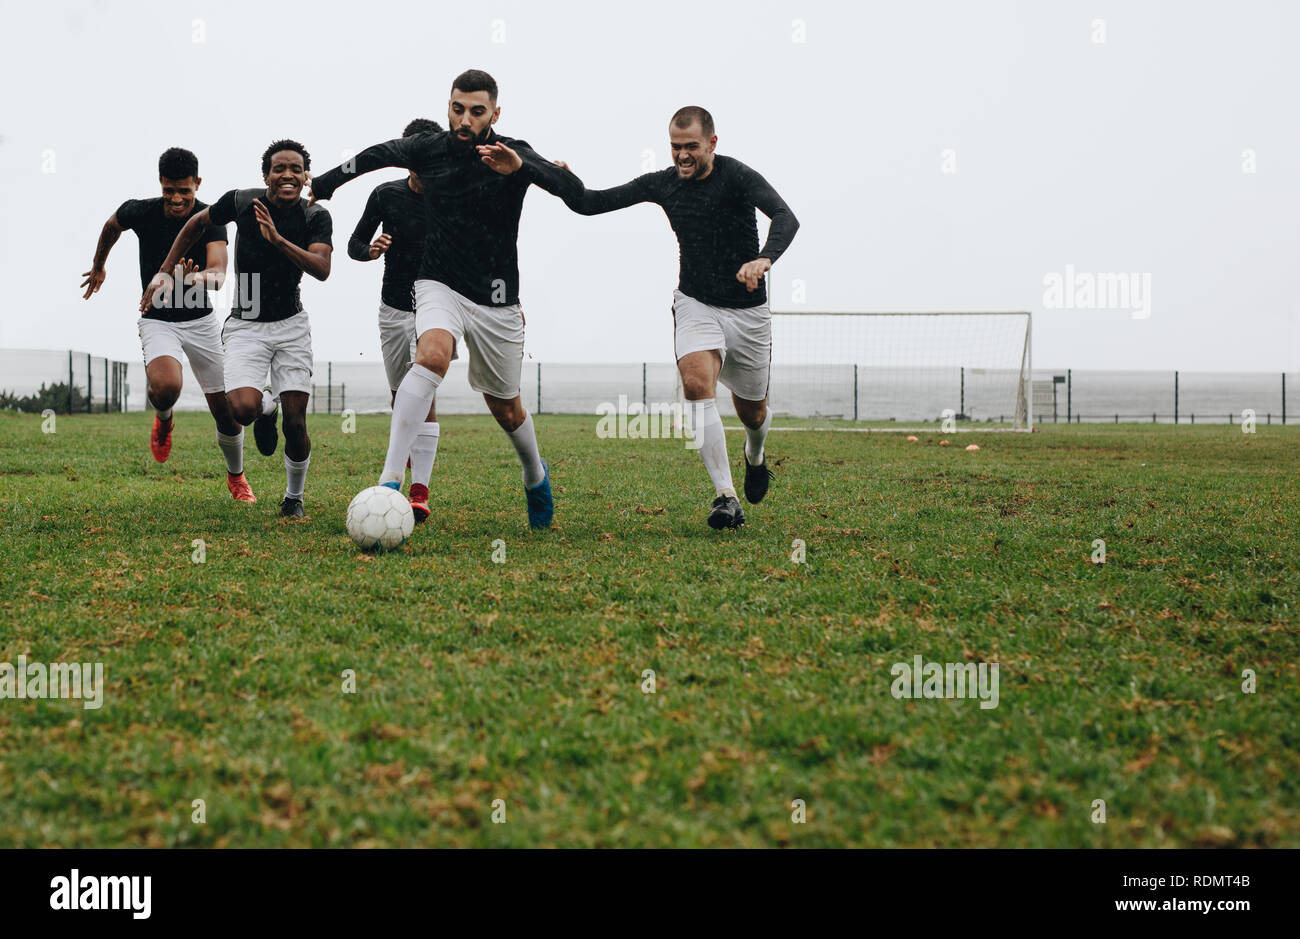 Football players practicing on field in the morning. Footballer kicking and running with the ball while other players run behind to take possession. - Stock Image